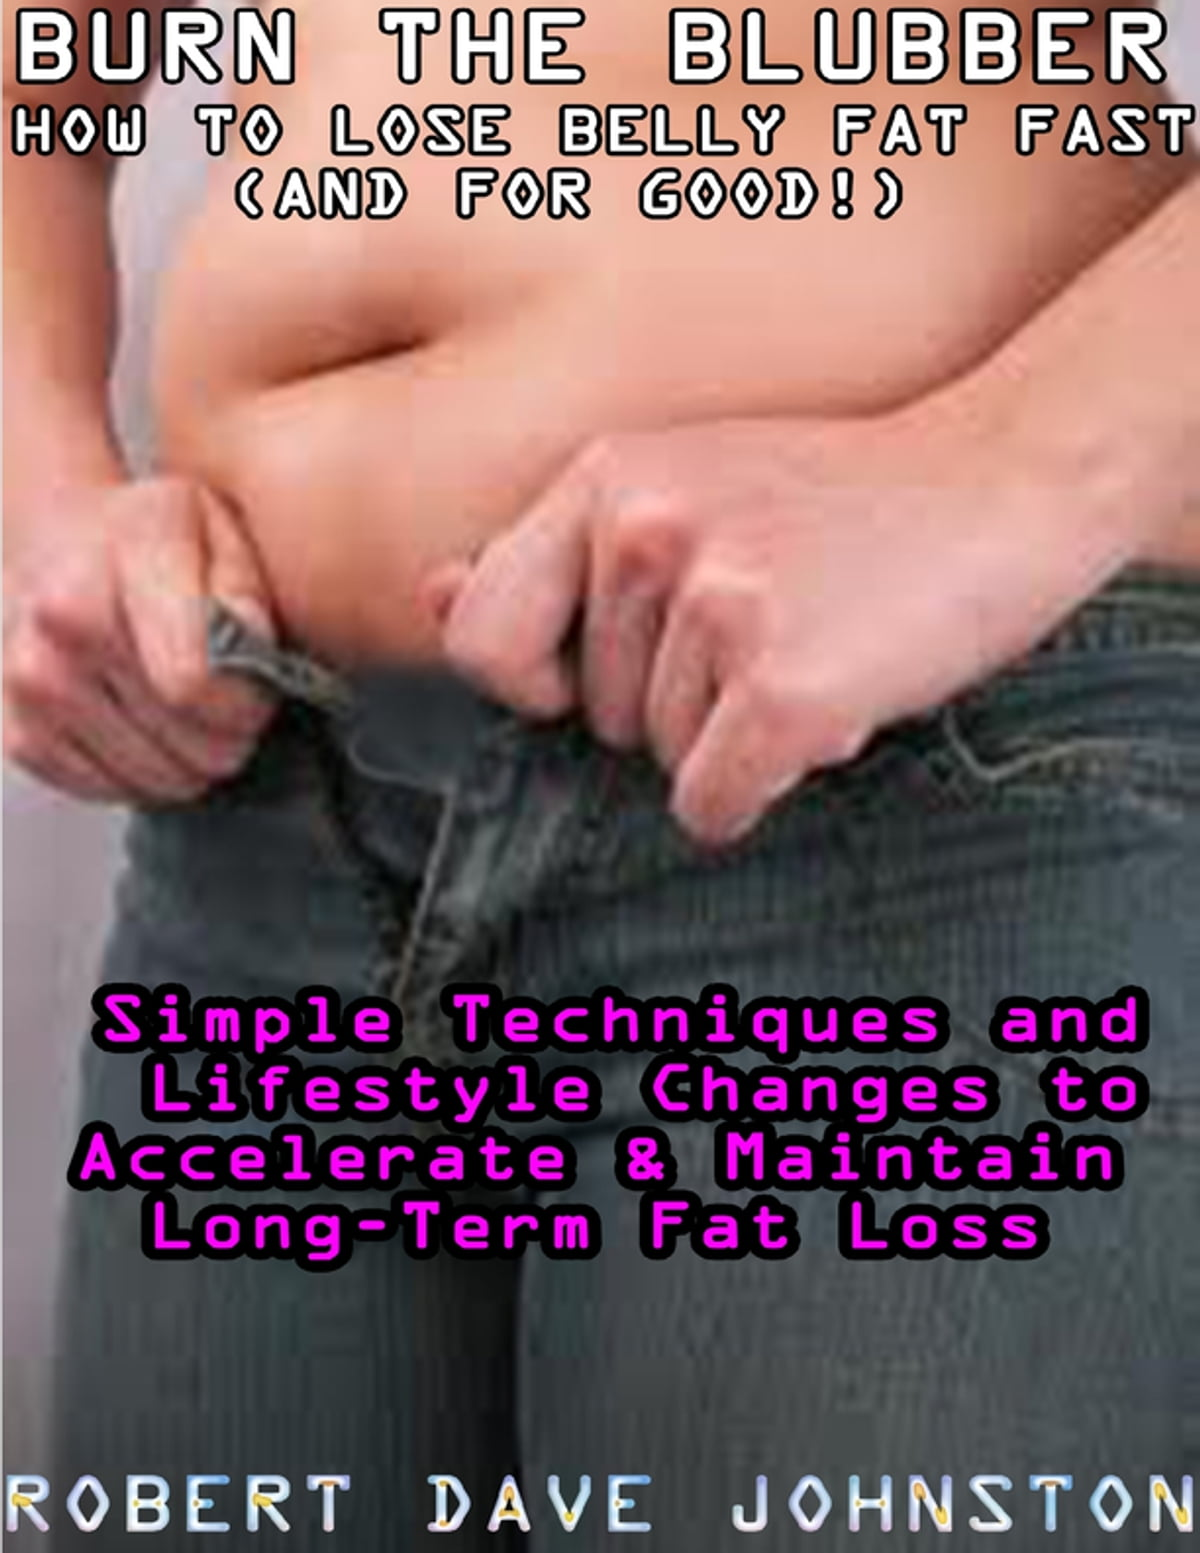 Burn The Blubber How To Lose Belly Fat Fast And For Good Ebook By Robert Dave Johnston 9781304316998 Rakuten Kobo United States